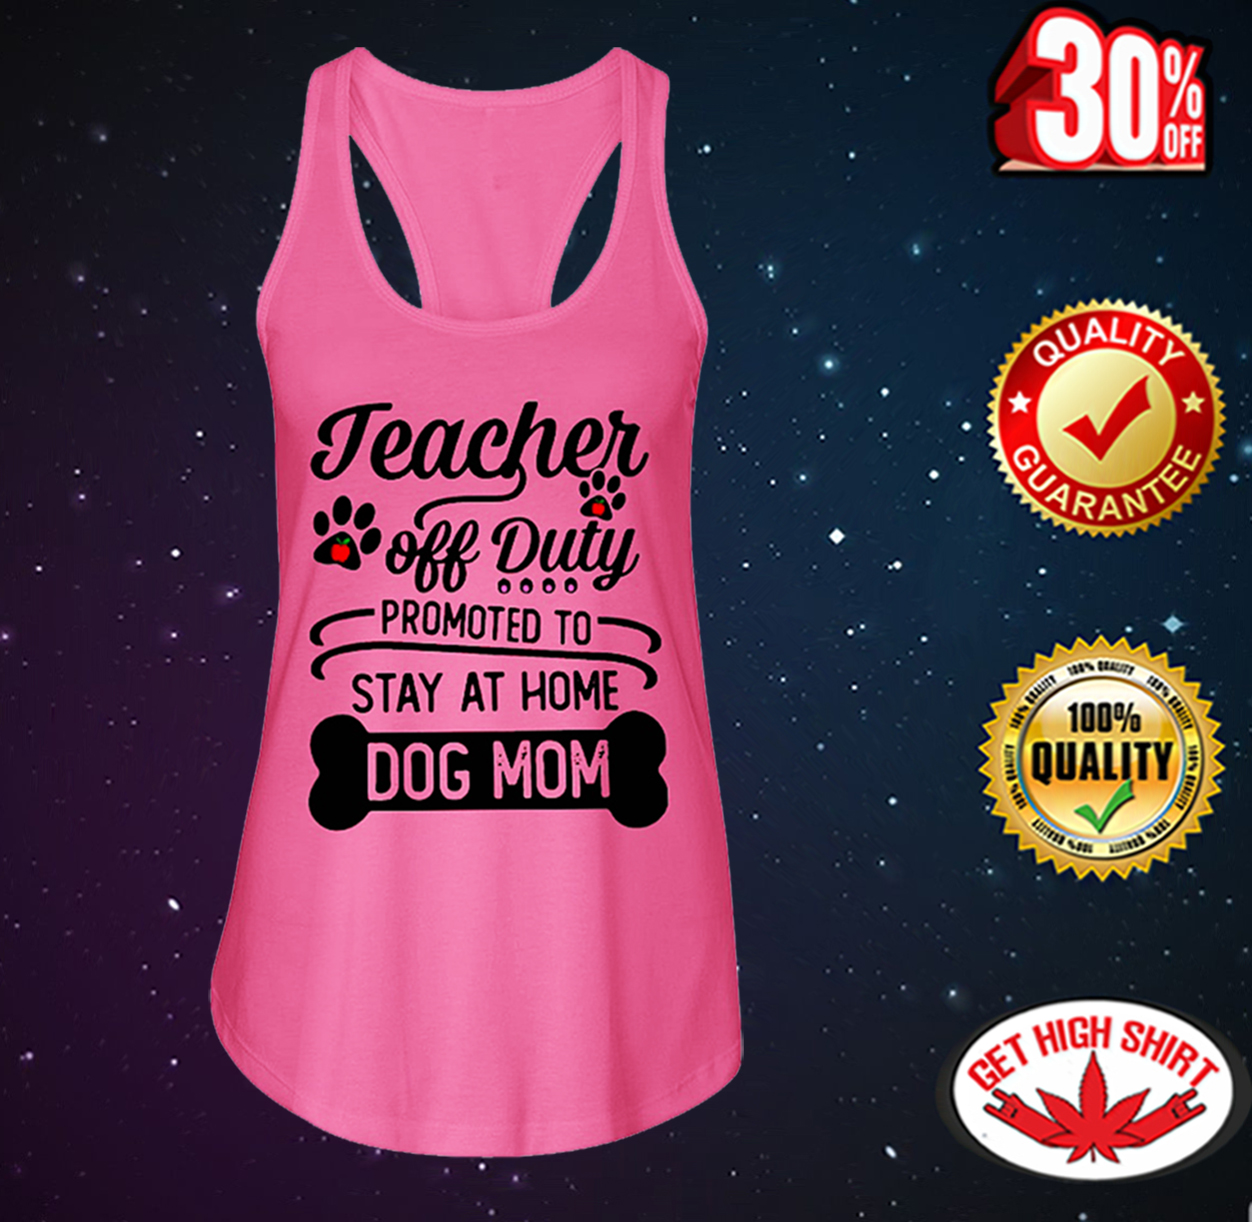 Teacher off duty promoted to stay at home dog mom flowy tank